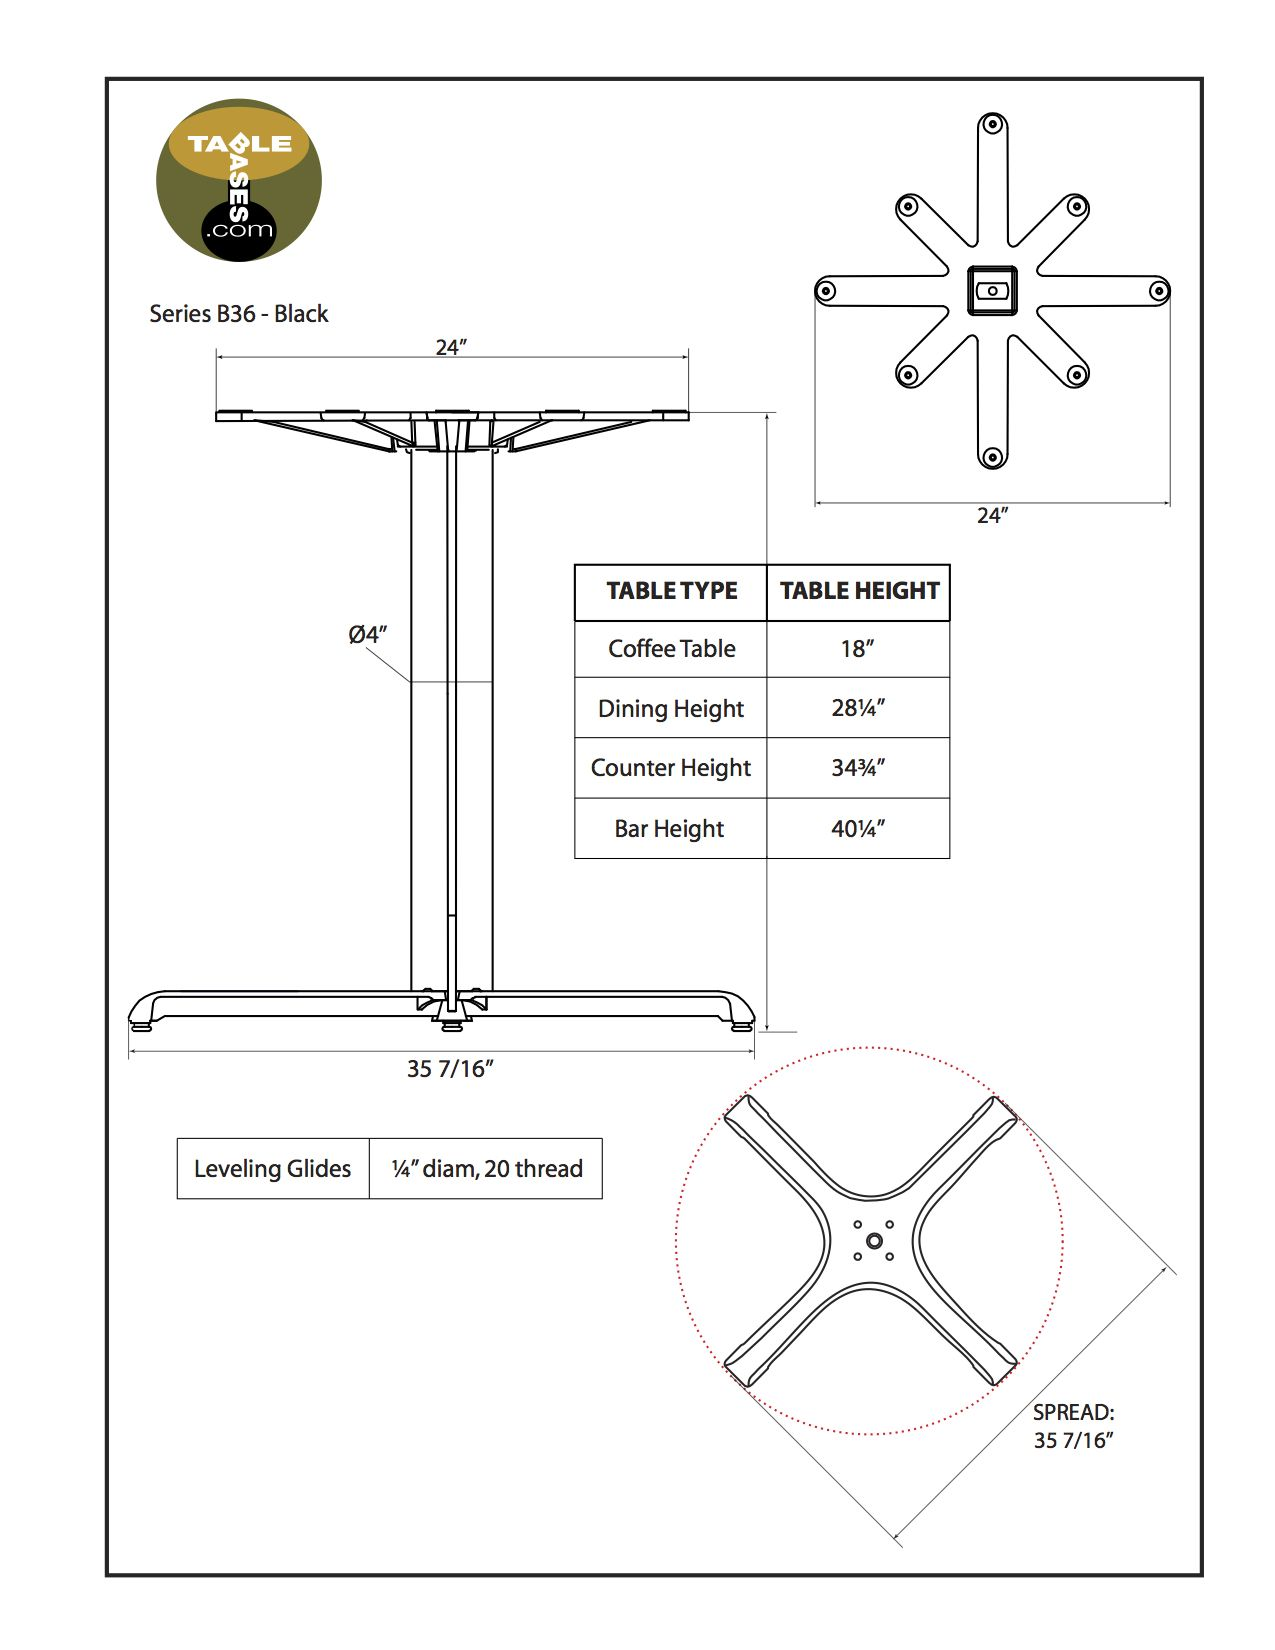 B36 Black Table Base - Specifications